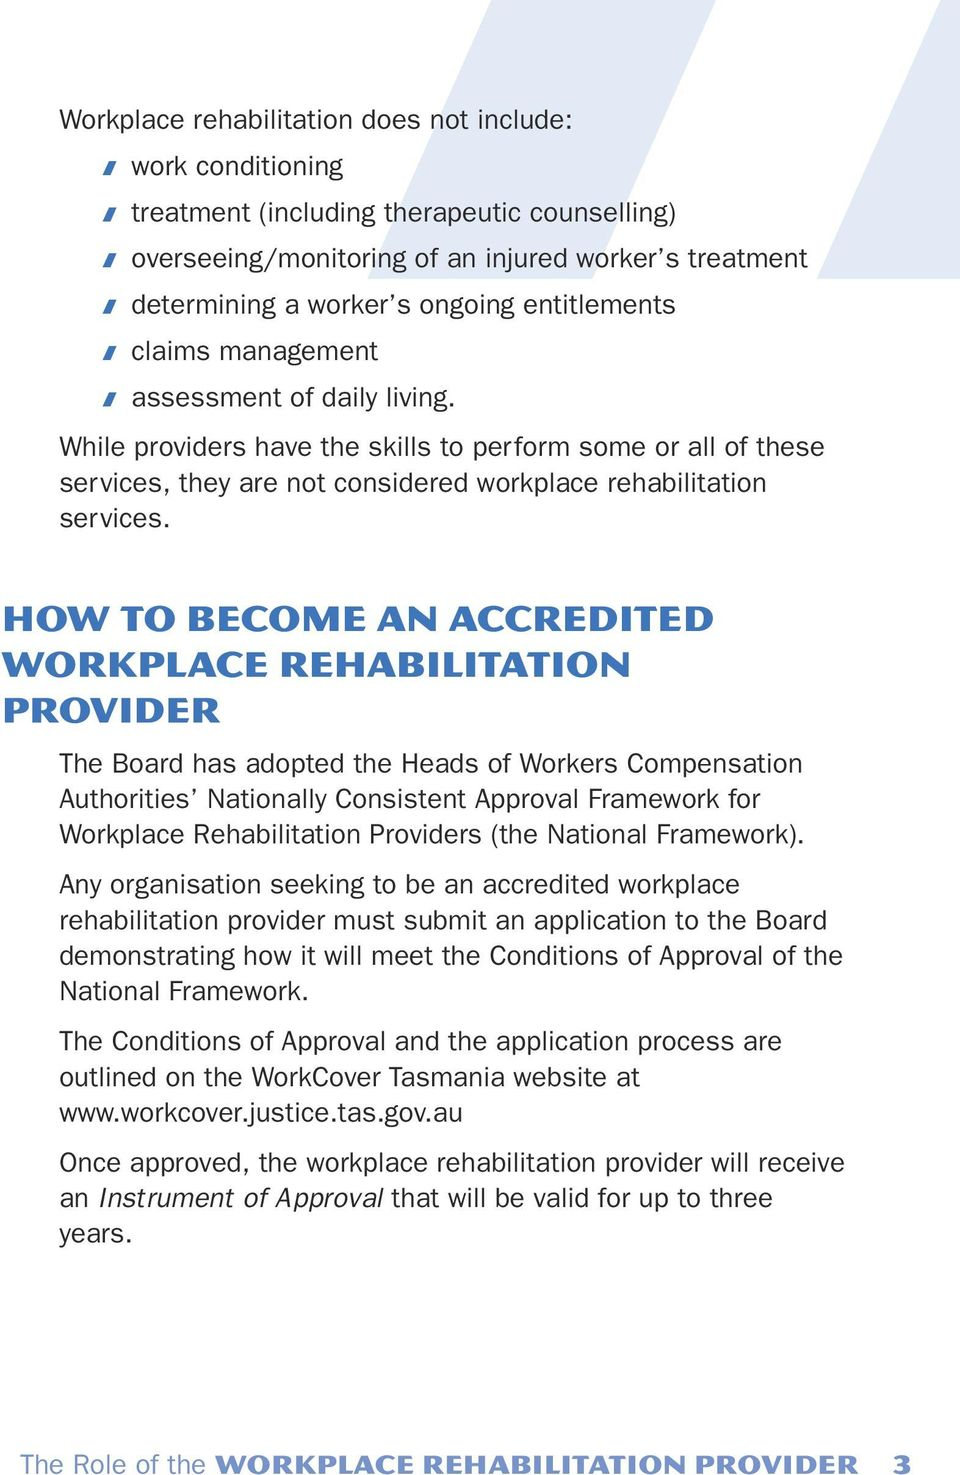 How To BECOME an Accredited workplace rehabilitation provider The Board has adopted the Heads of Workers Compensation Authorities Nationally Consistent Approval Framework for Workplace Rehabilitation